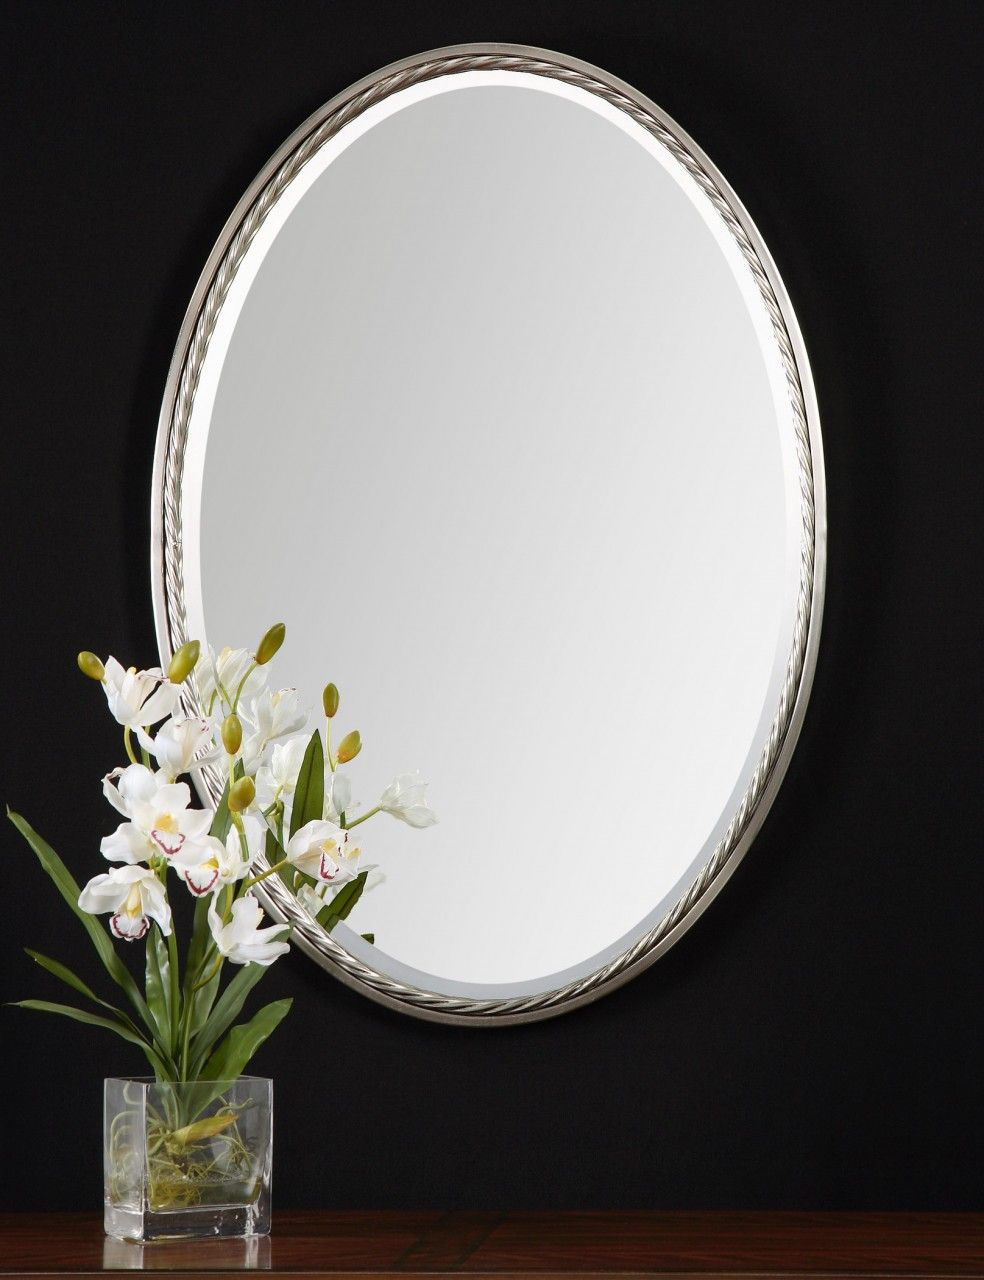 Bathroom Small Oval Bathroom Mirror With New Decorative Design From